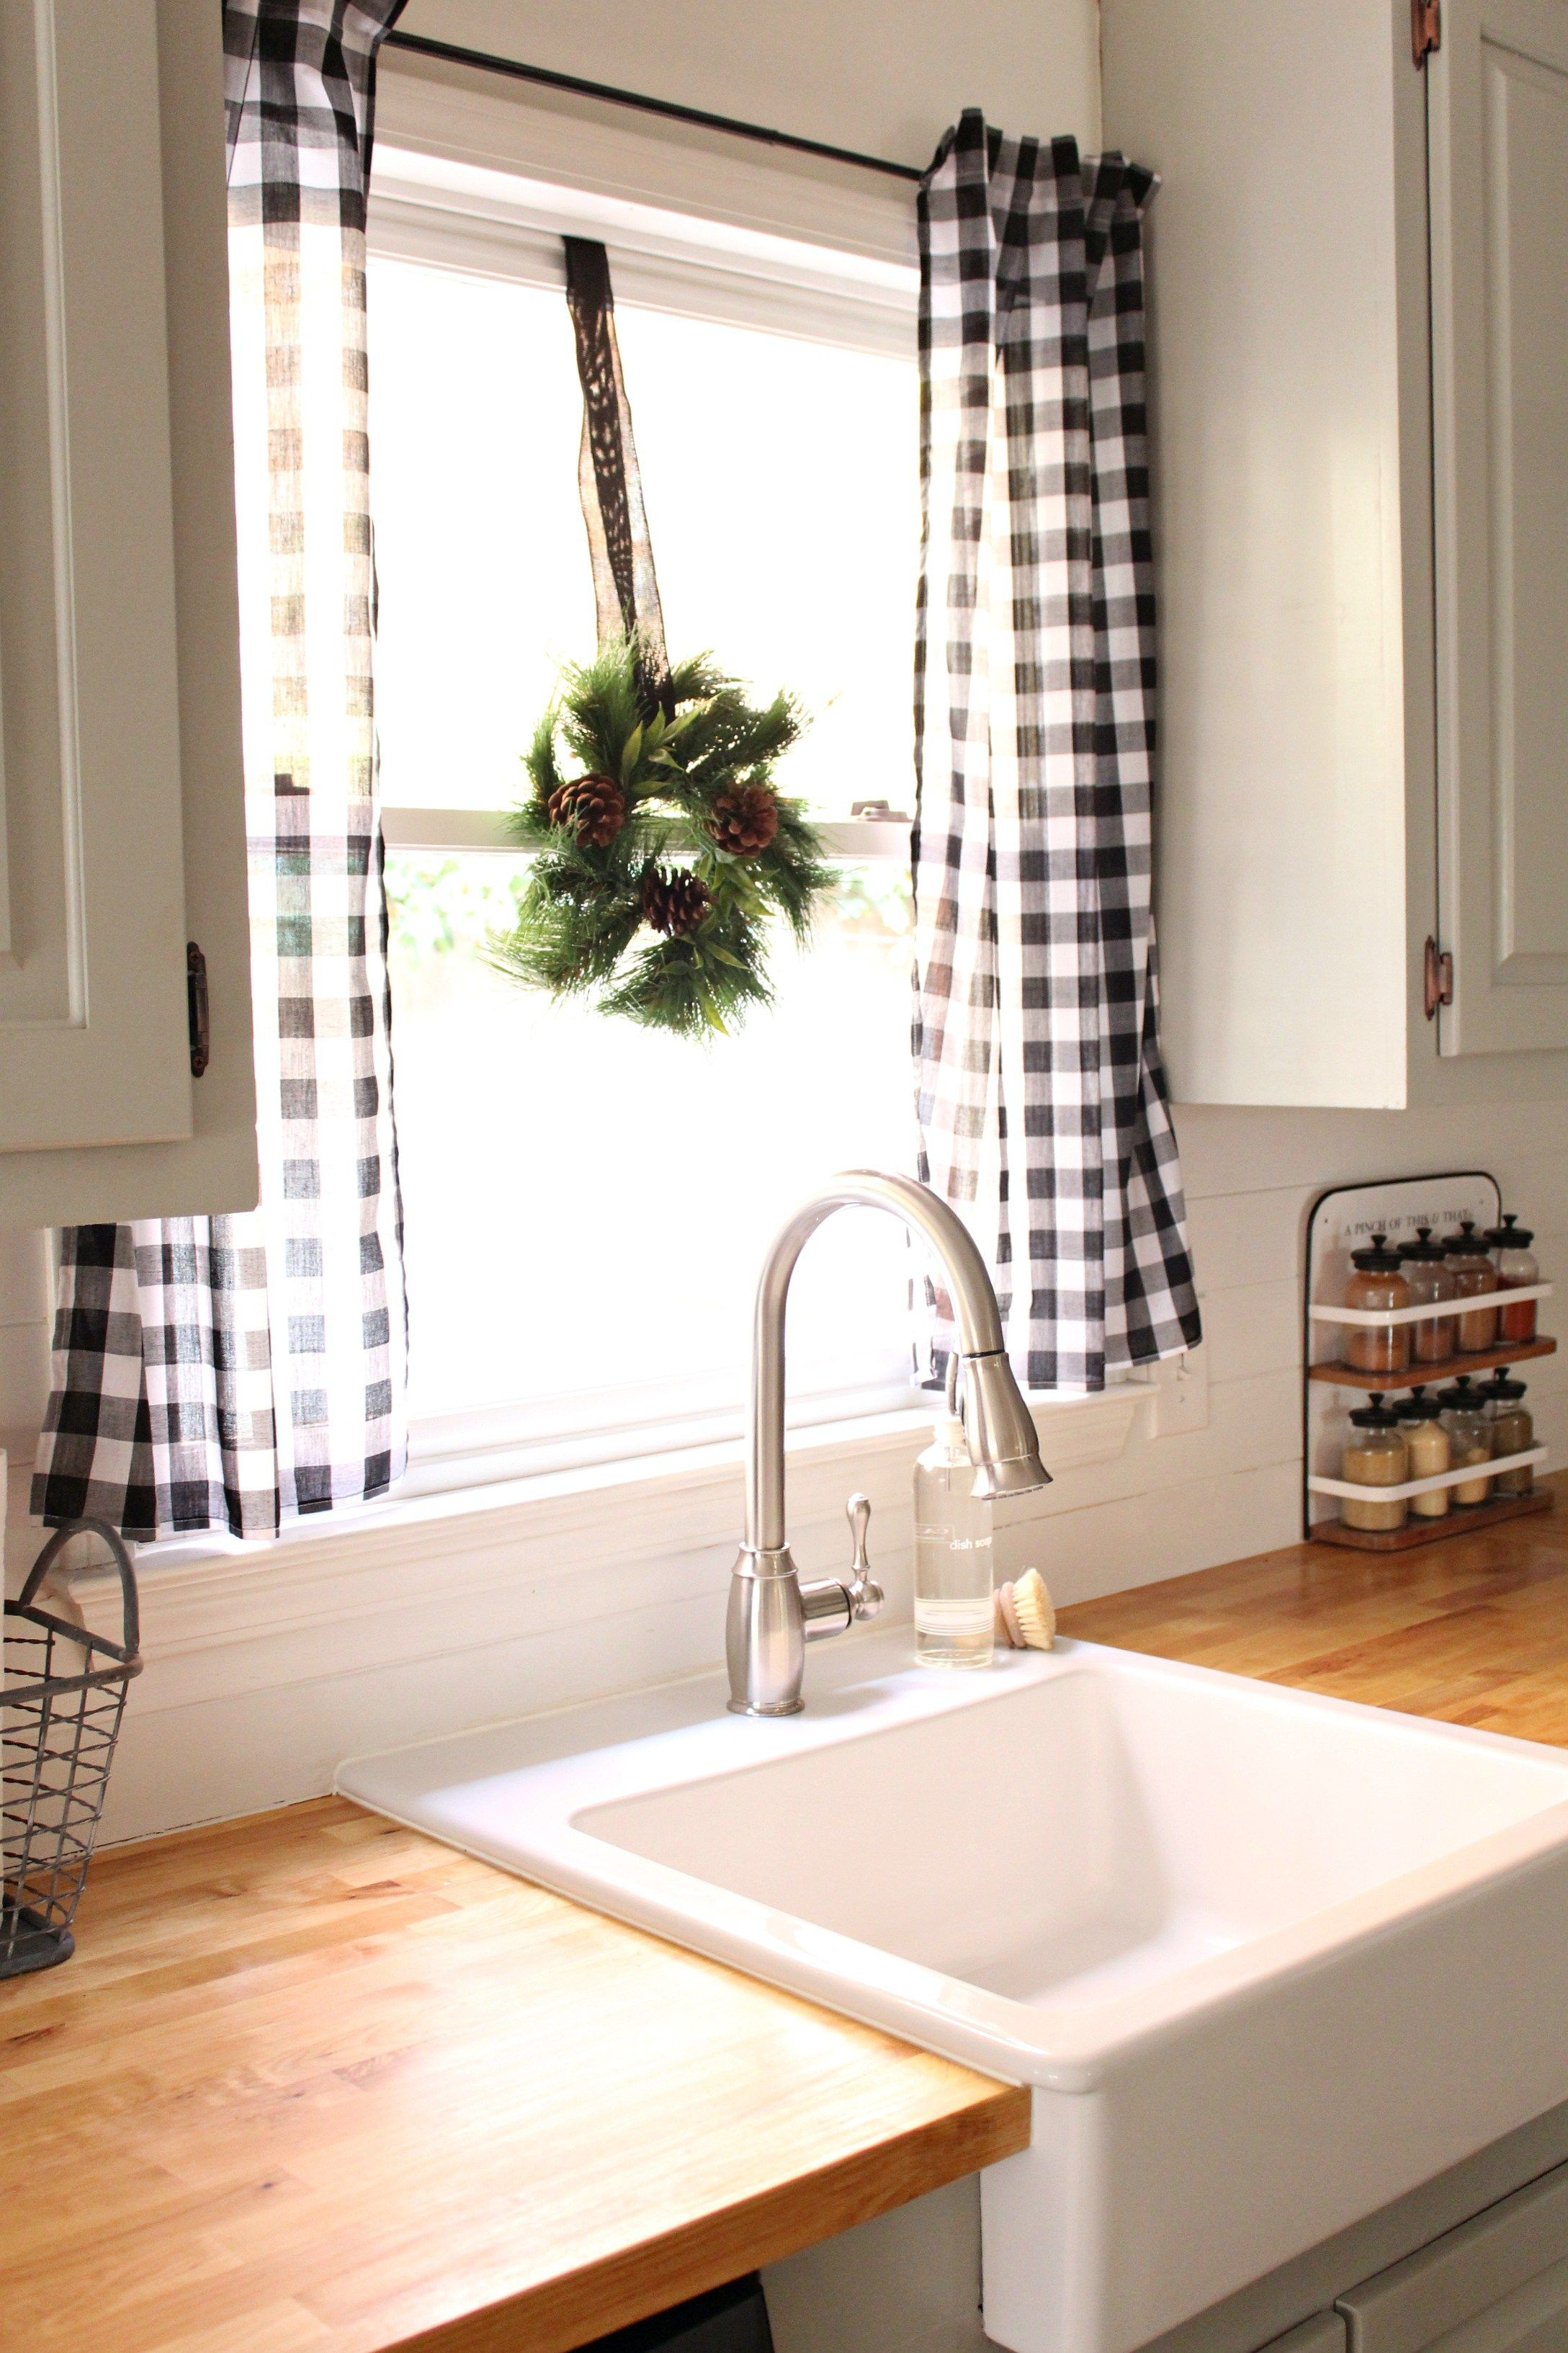 Grey And White Gingham Curtains A Very Merry Christmas Home Tour Home Kitchen Curtains